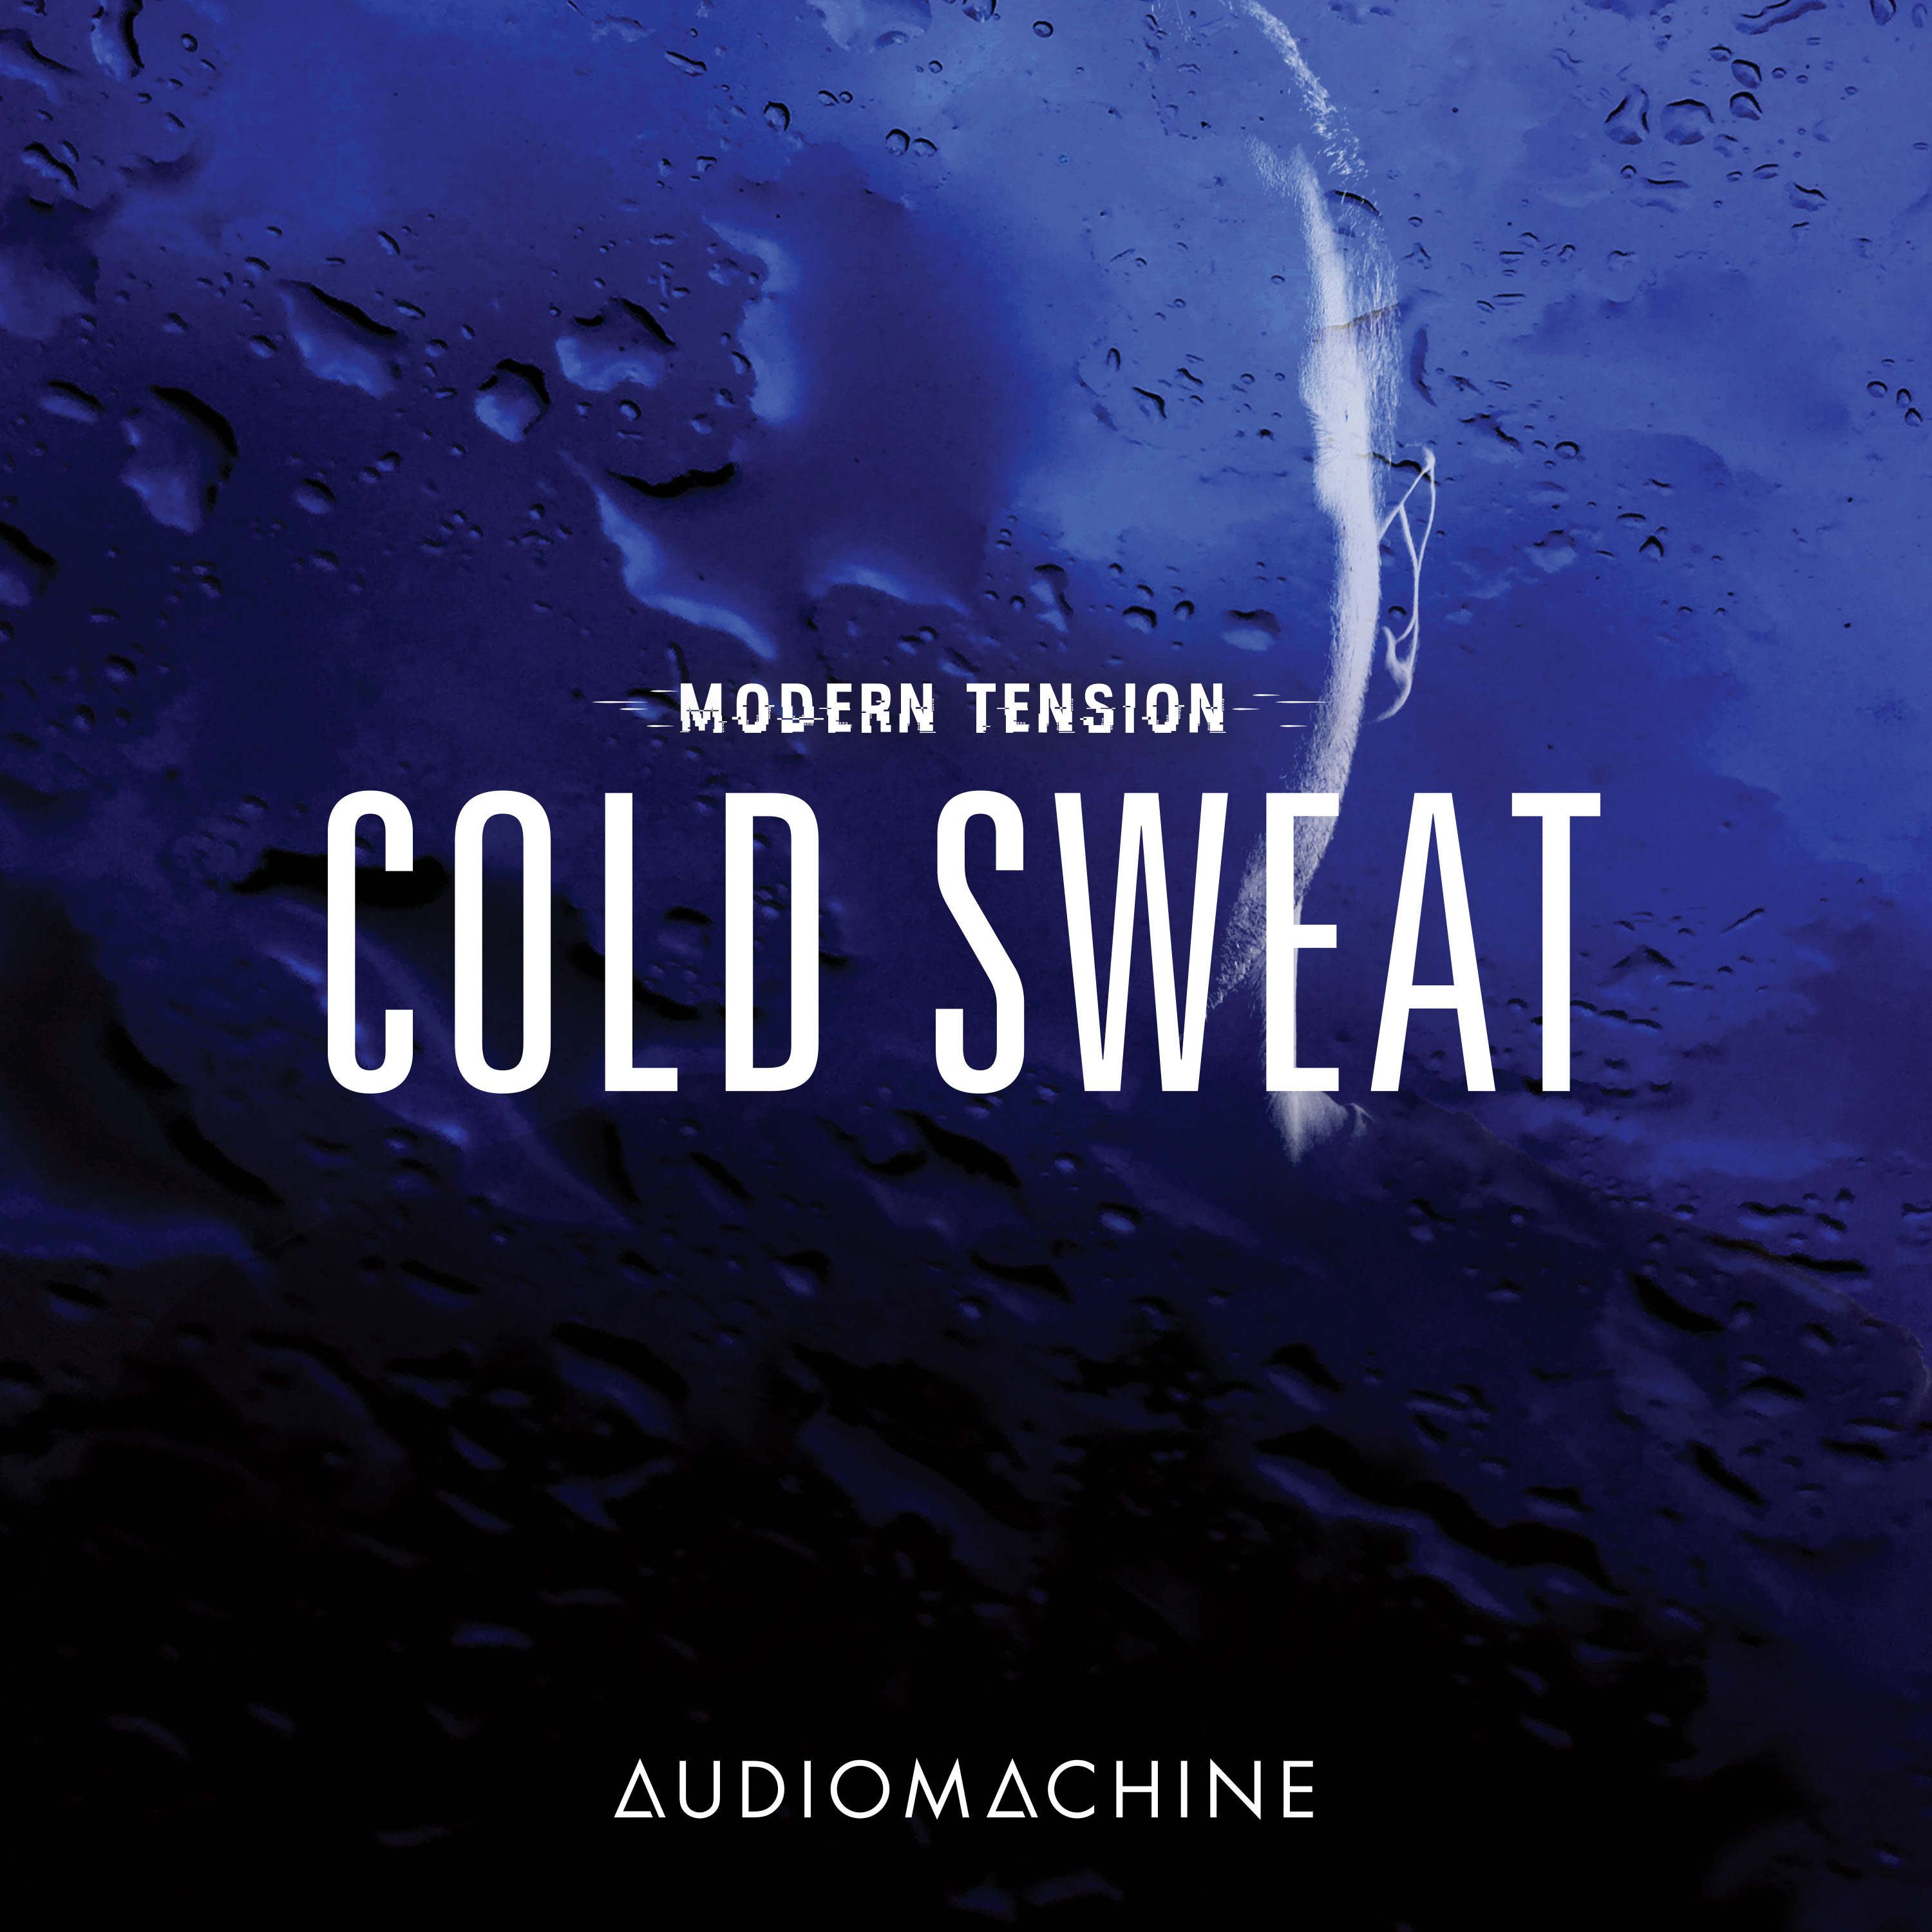 Modern Tension: Cold Sweat